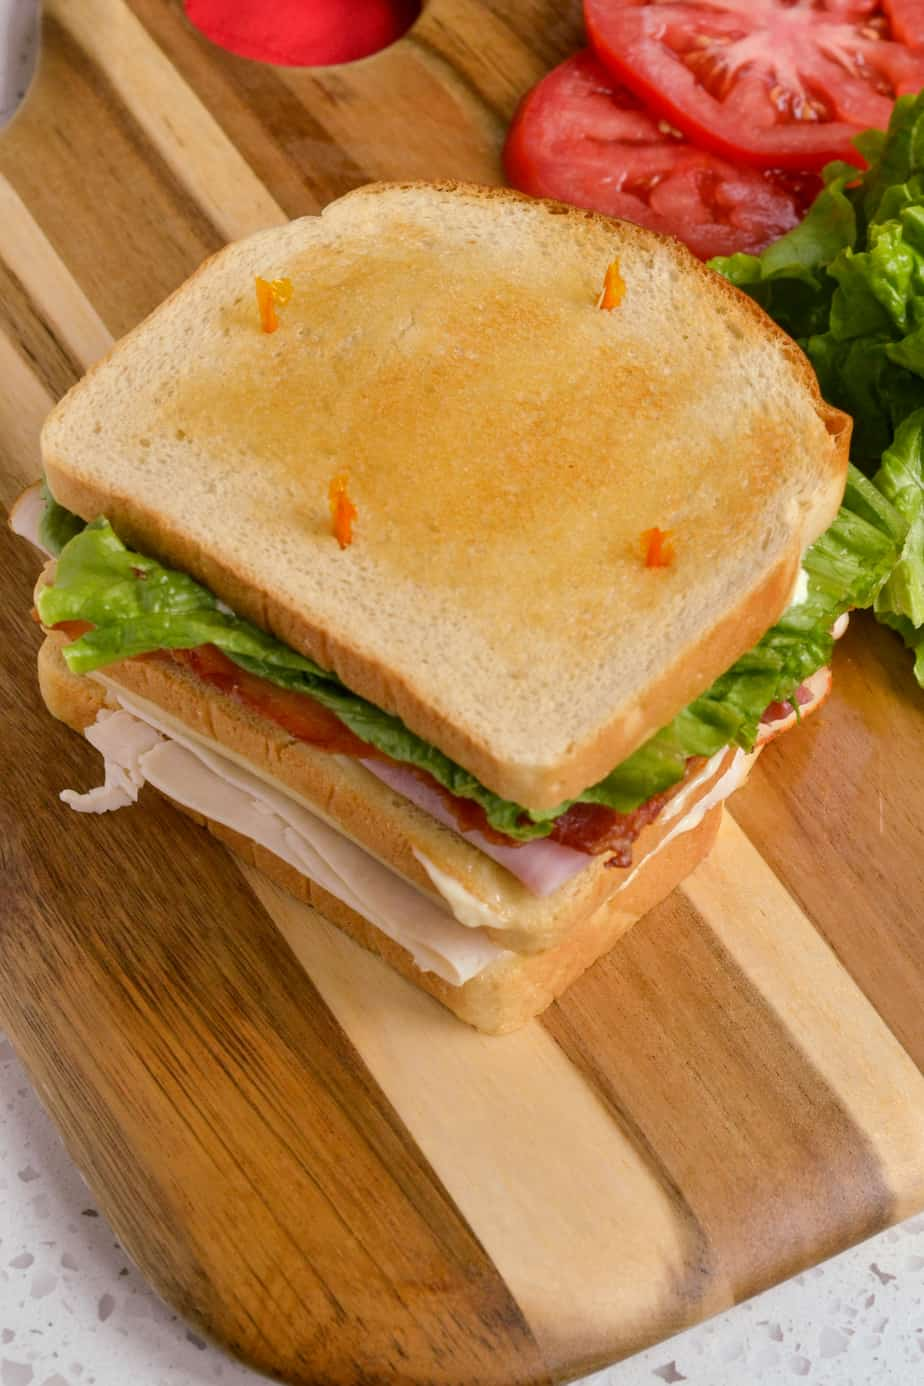 Classic whole club sandwich with lettuce, tomato, turkey, ham, and bacon.